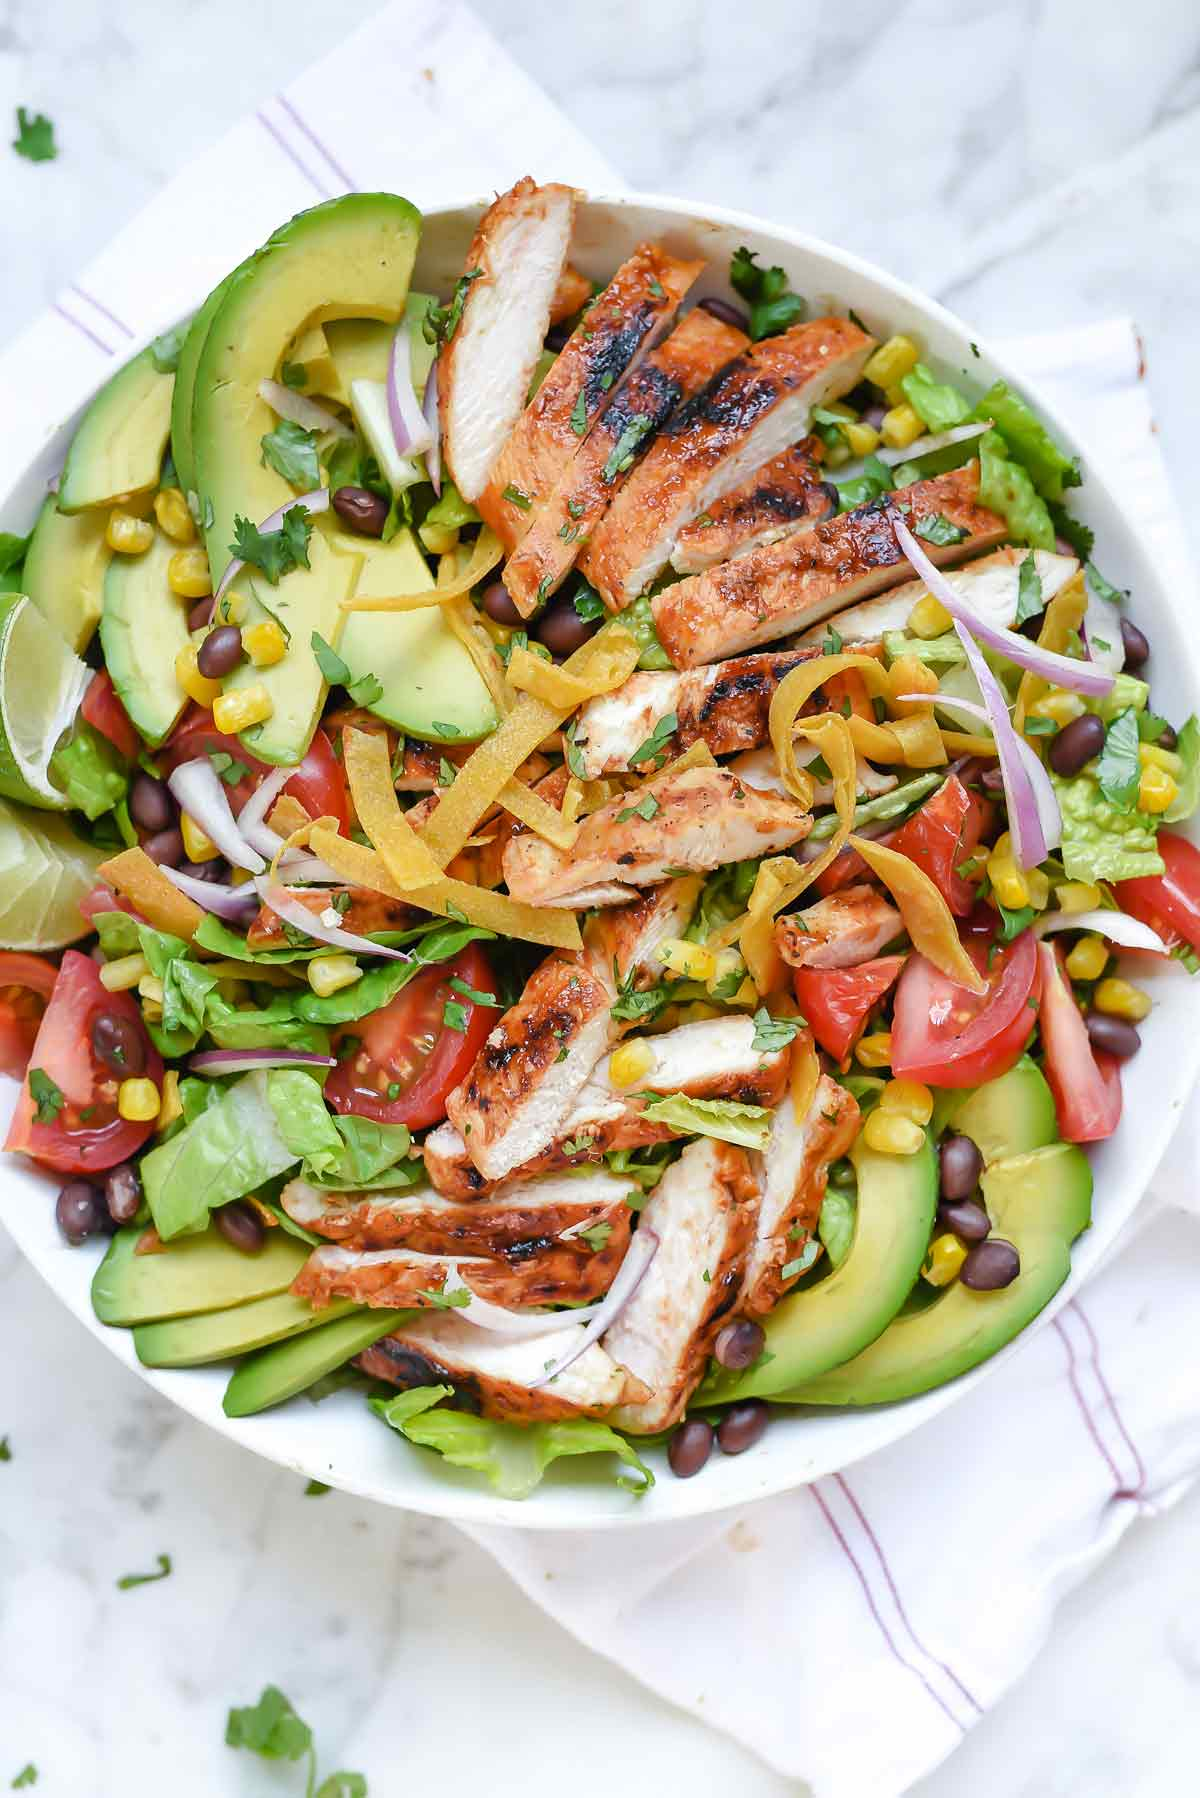 salad chicken bbq southwest recipes healthy salads recipe dinner avocado foodiecrush grilled barbecue lunch meal easy beans food cheese corn